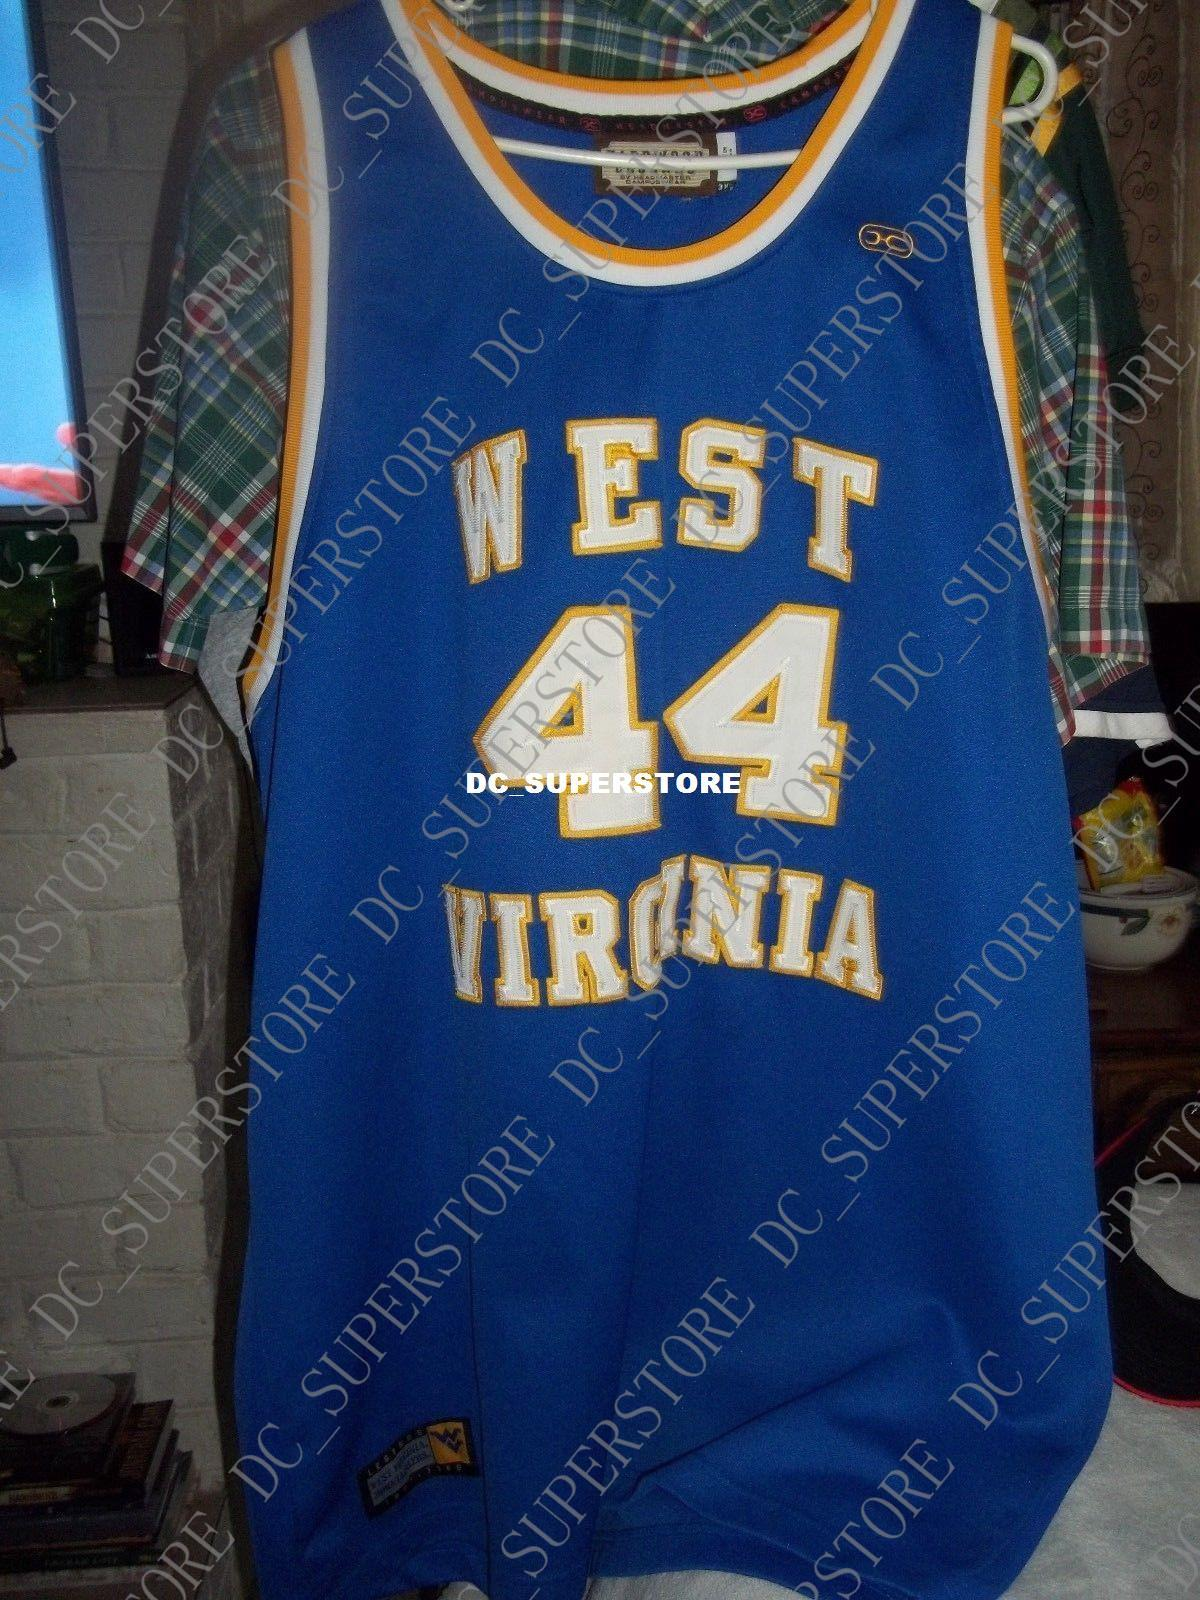 272b419ce 2019 WEST VIRGINIA MOUTAINEERS  44 JERRY WEST JERSEY MENS 3XL BY HARDWOOD  LEGENDS From Dc superstore